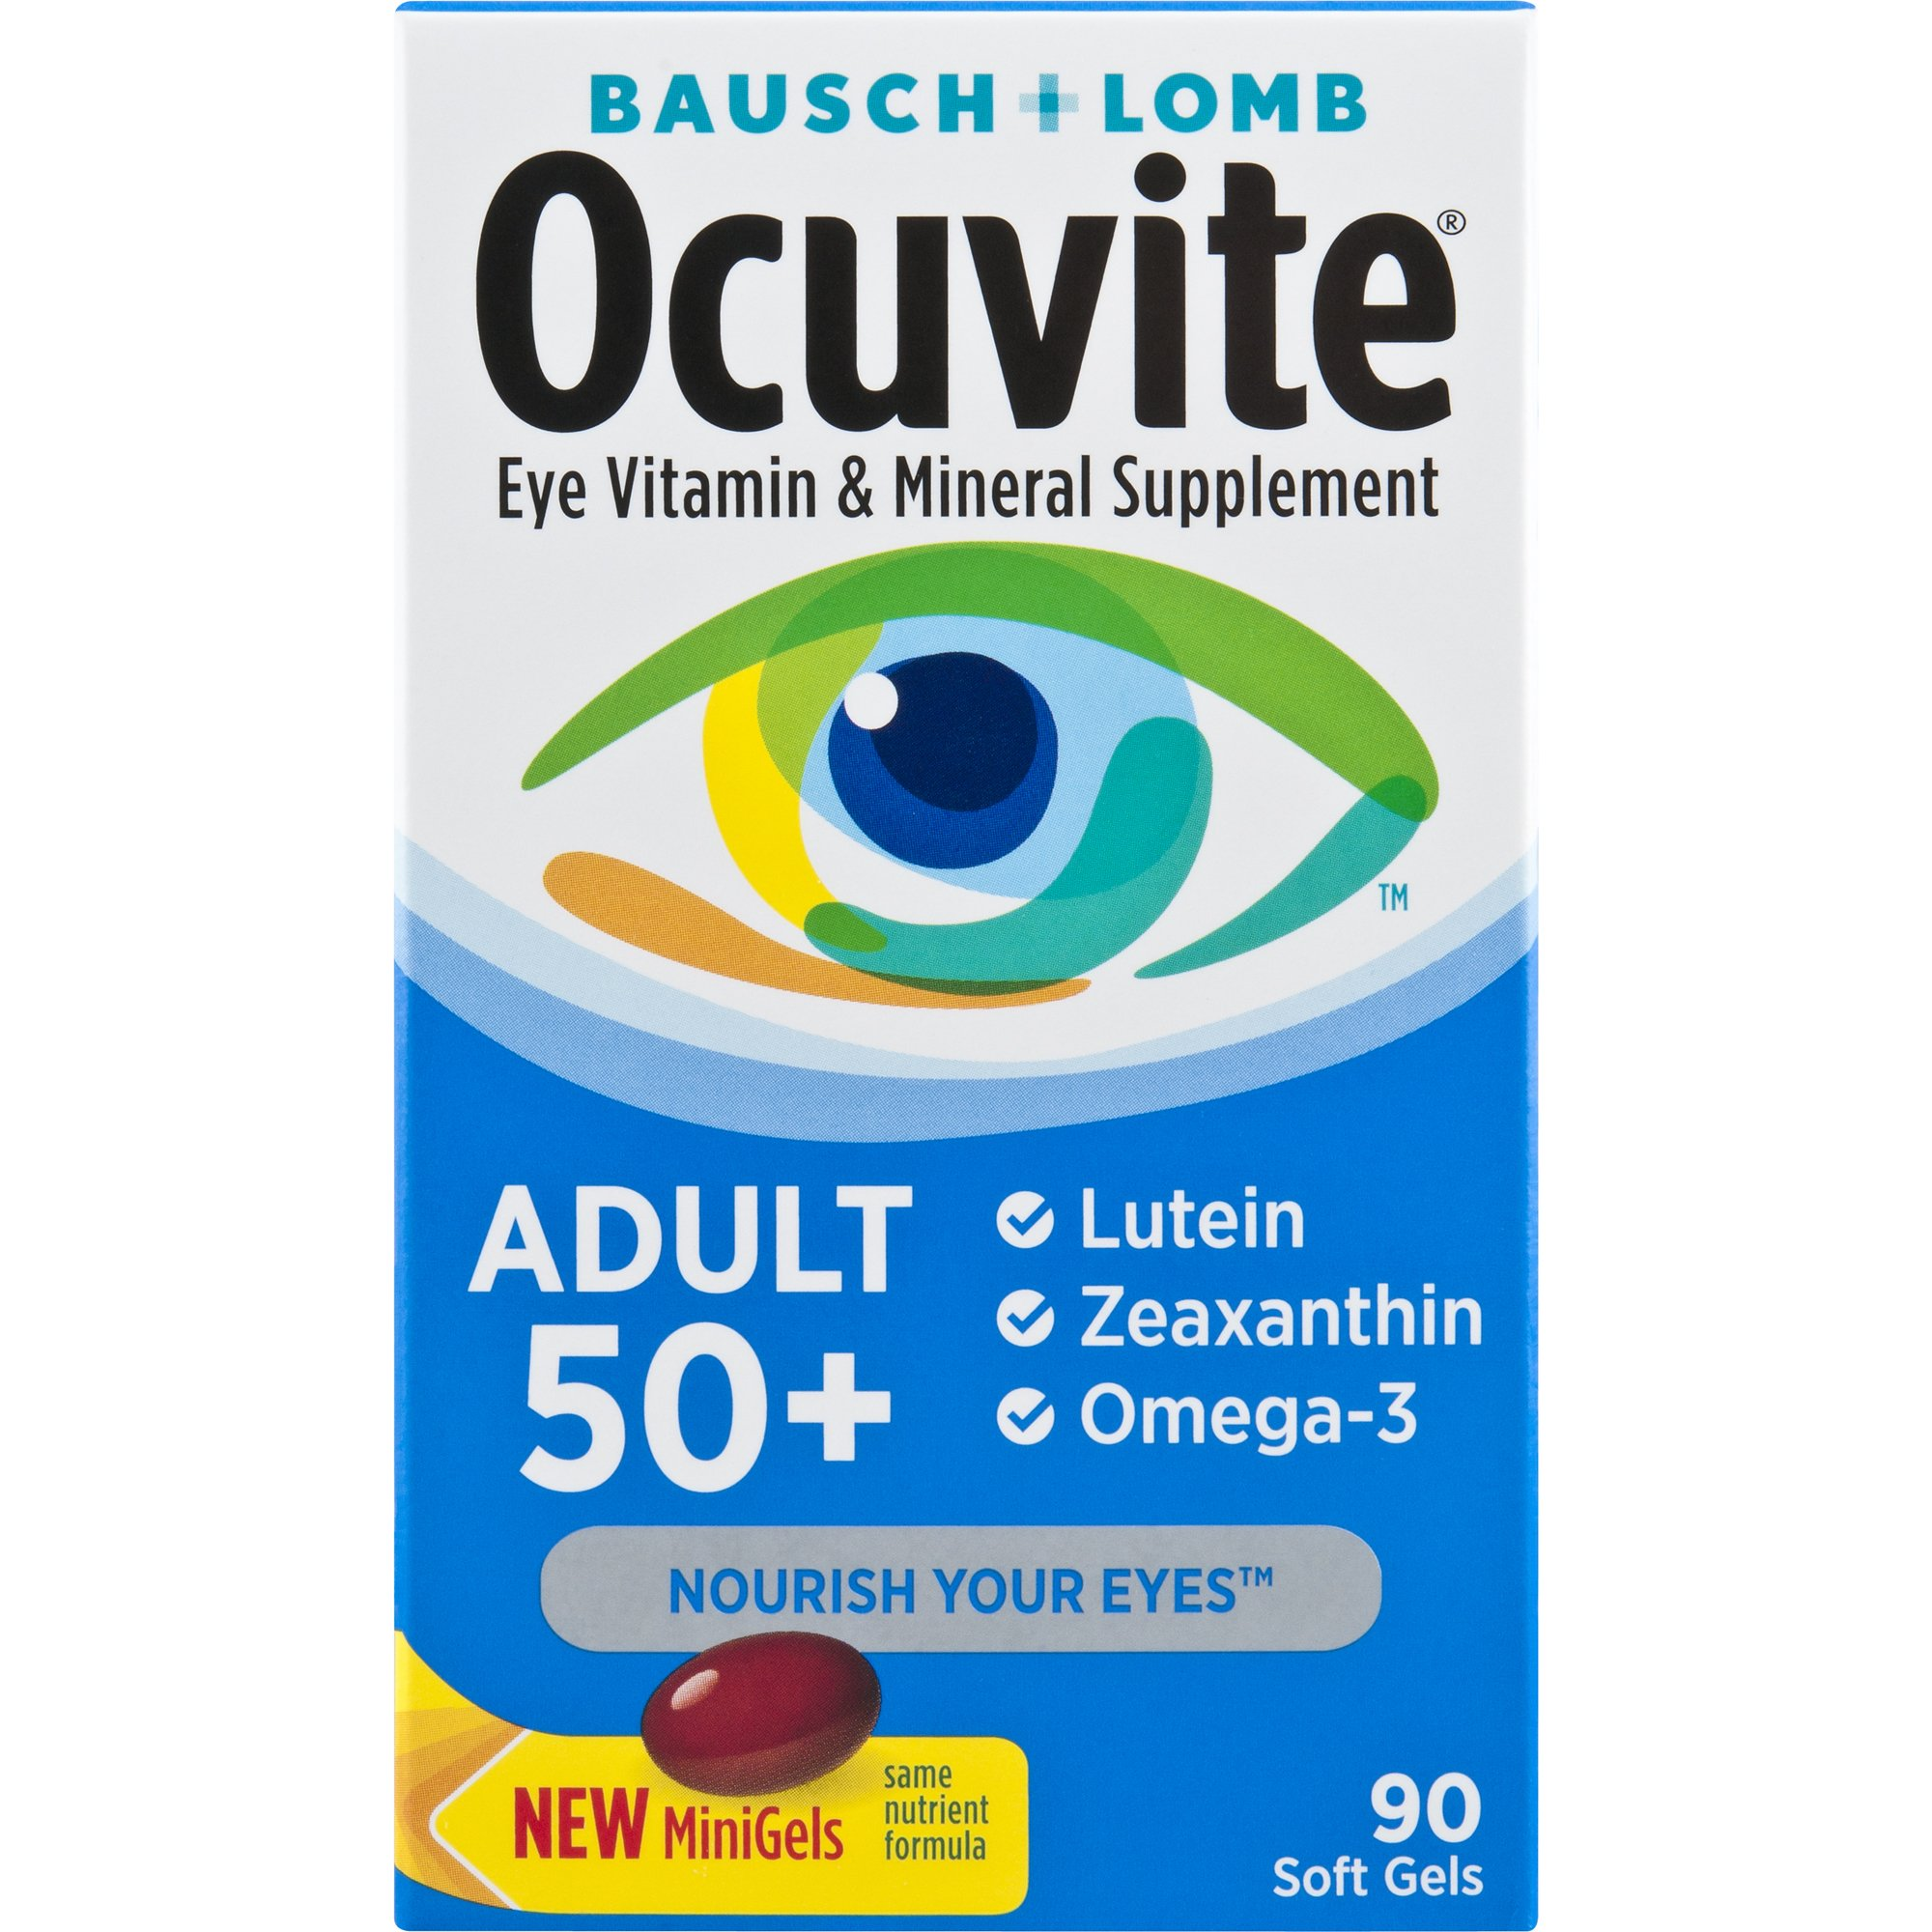 Bausch + Lomb Ocuvite Adult 50+ Vitamin & Mineral Supplement with Lutein, Zeaxanthin, and Omega-3 Soft Gels, 90-Count Bottle by Ocuvite